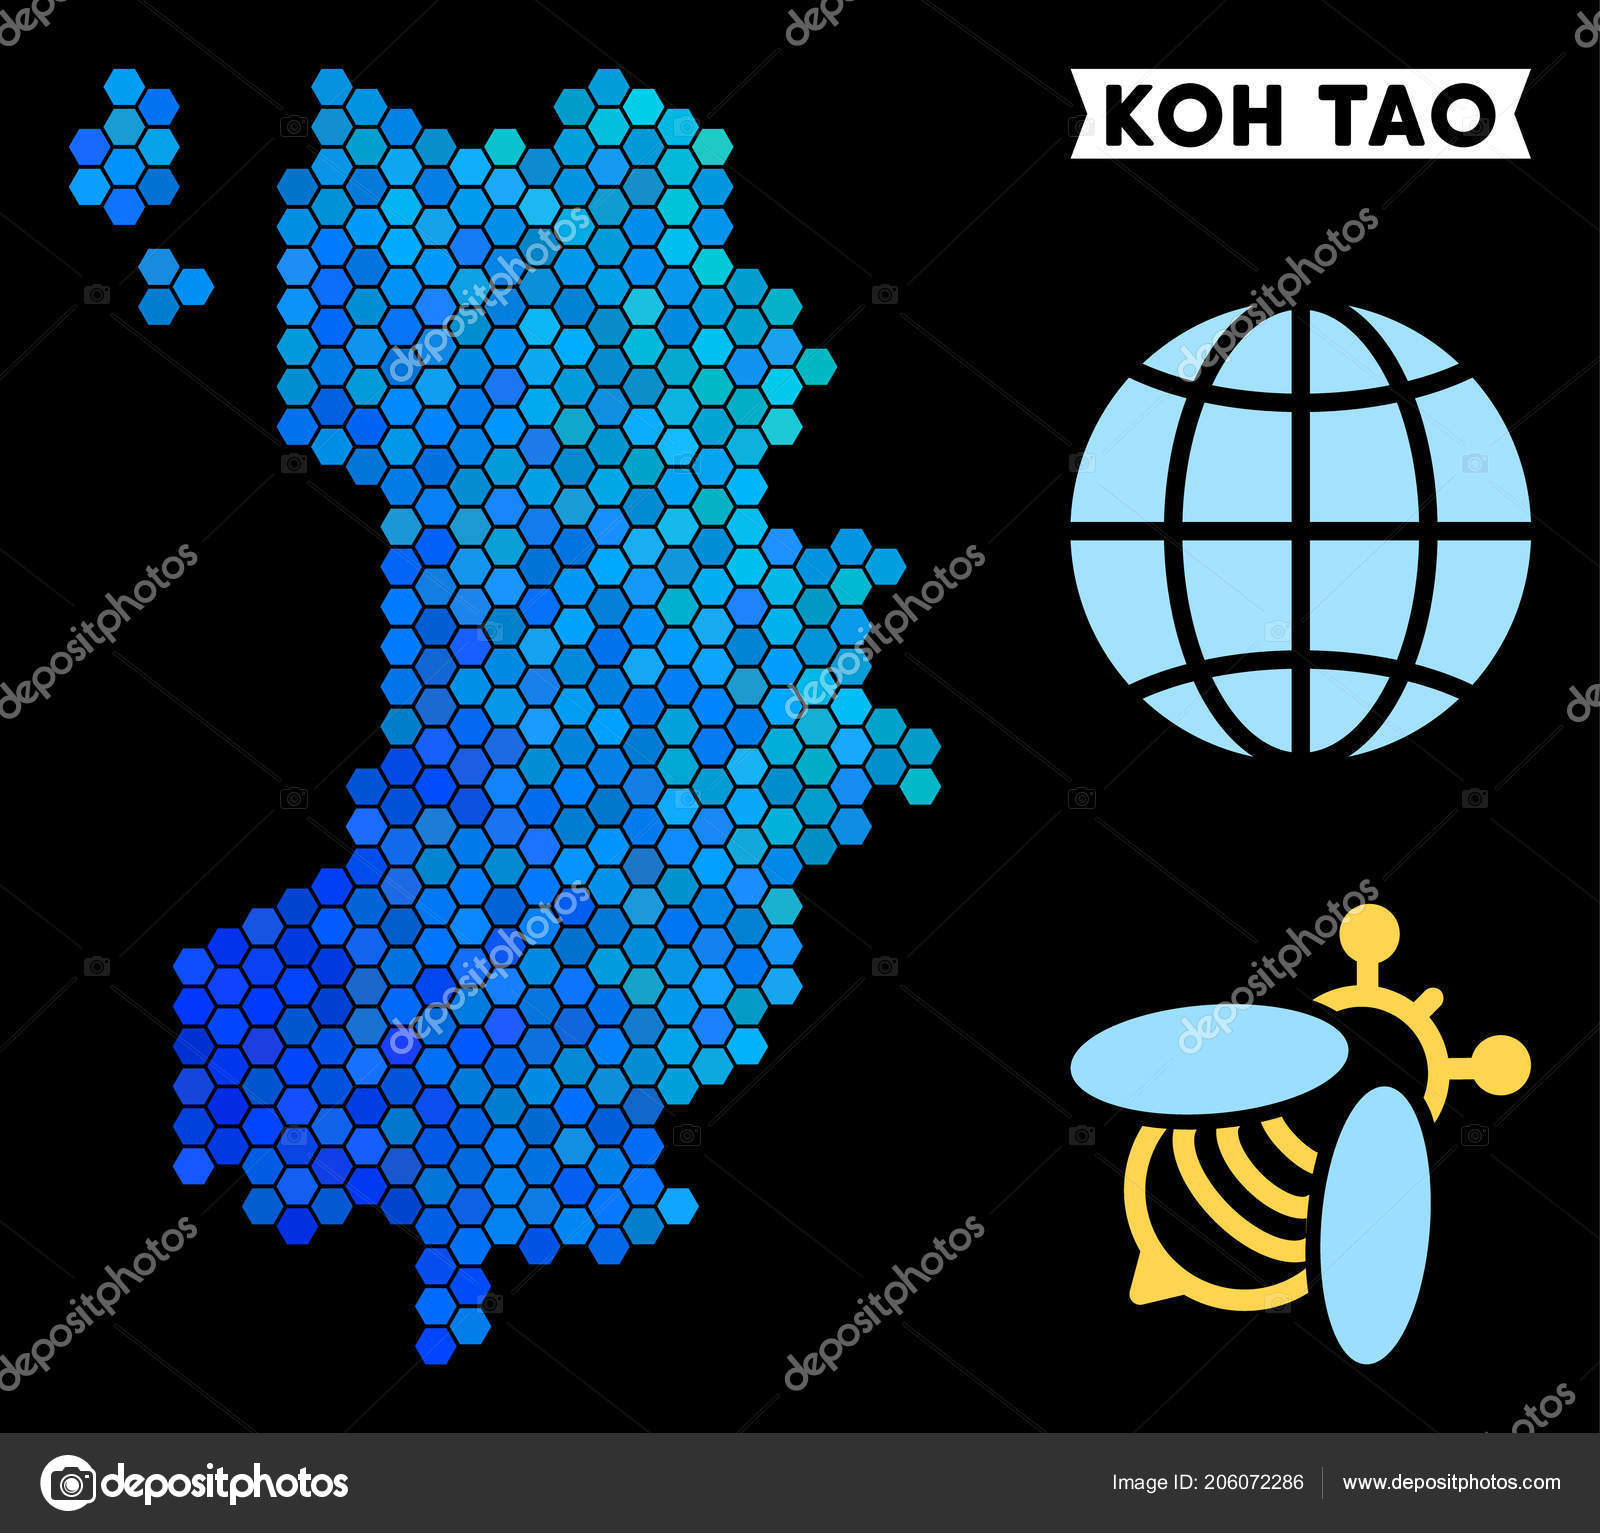 Blue Hexagon Koh Tao Thai Island Map Stock Vector C Ahasoft 206072286